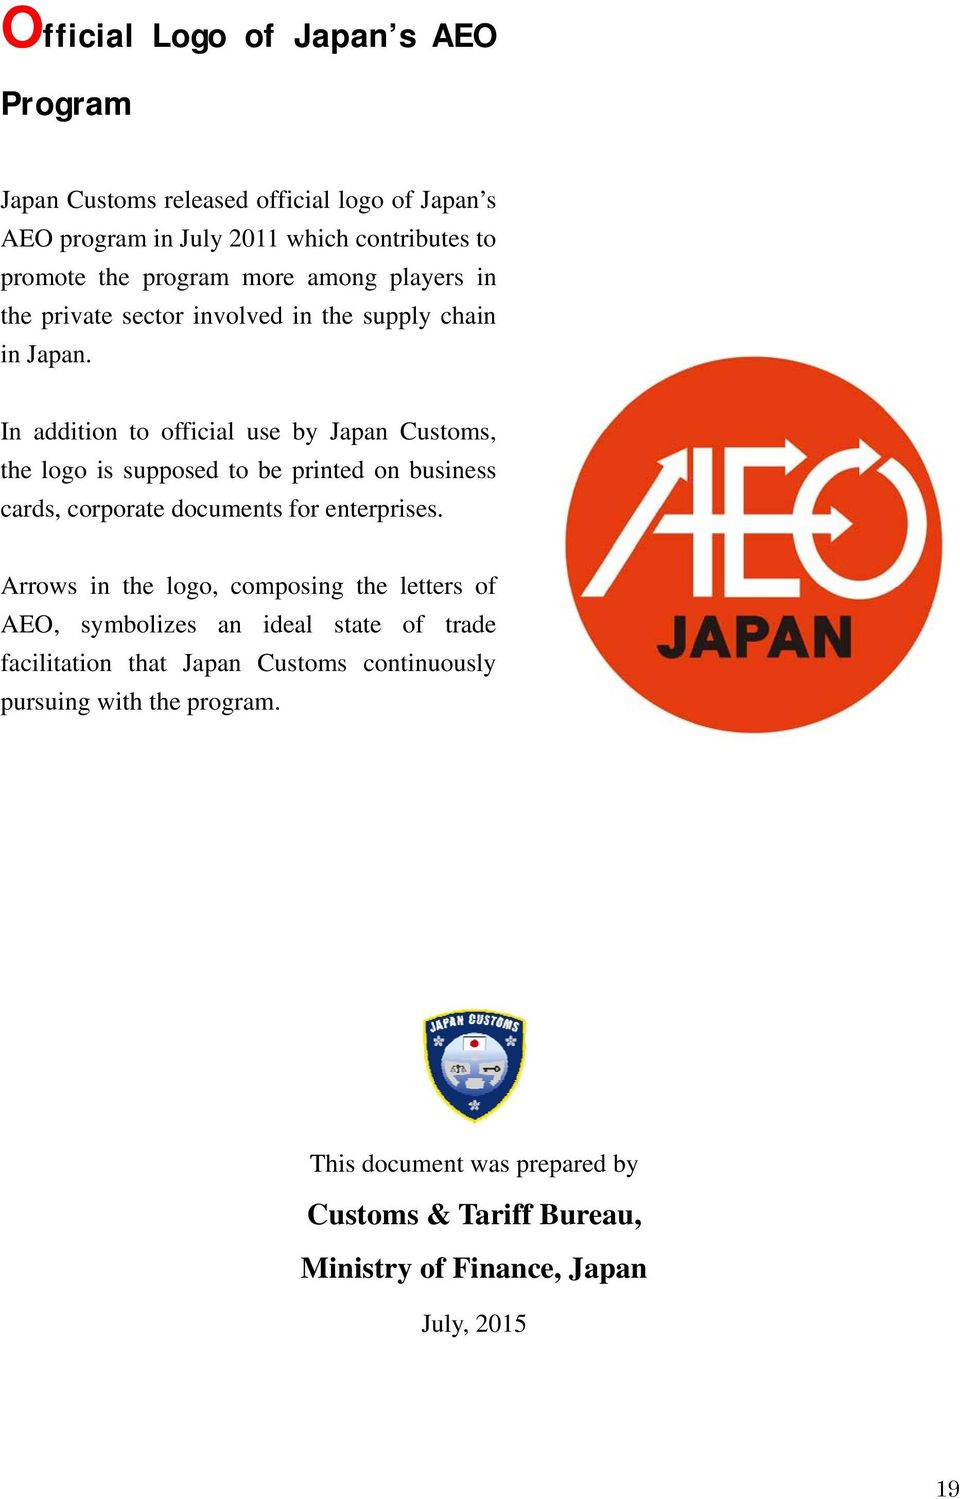 In addition to official use by Japan Customs, the logo is supposed to be printed on business cards, corporate documents for enterprises.